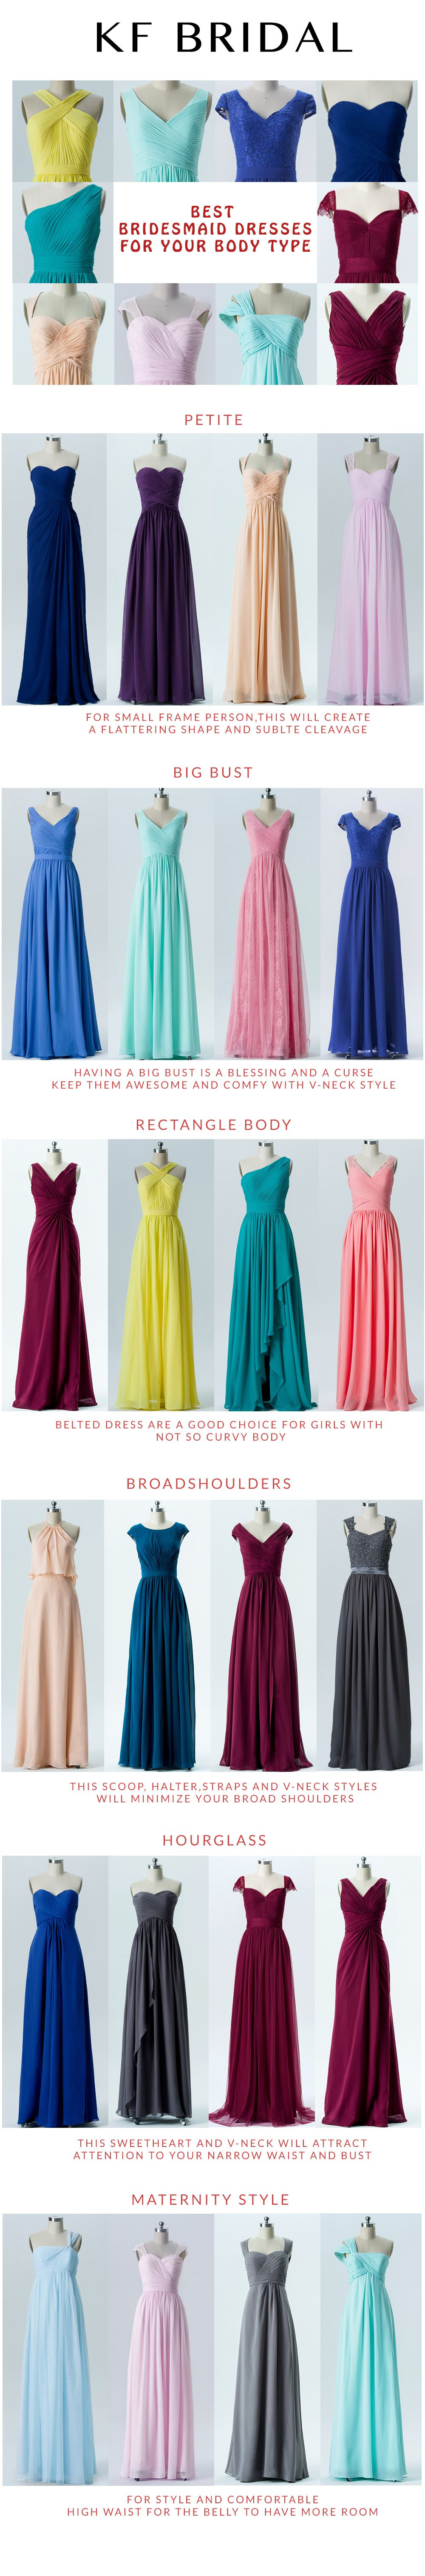 200 bridesmaid dresses for all shapes and sizes which is your type 200 bridesmaid dresses for all shapes and sizes which is your type ombrellifo Images